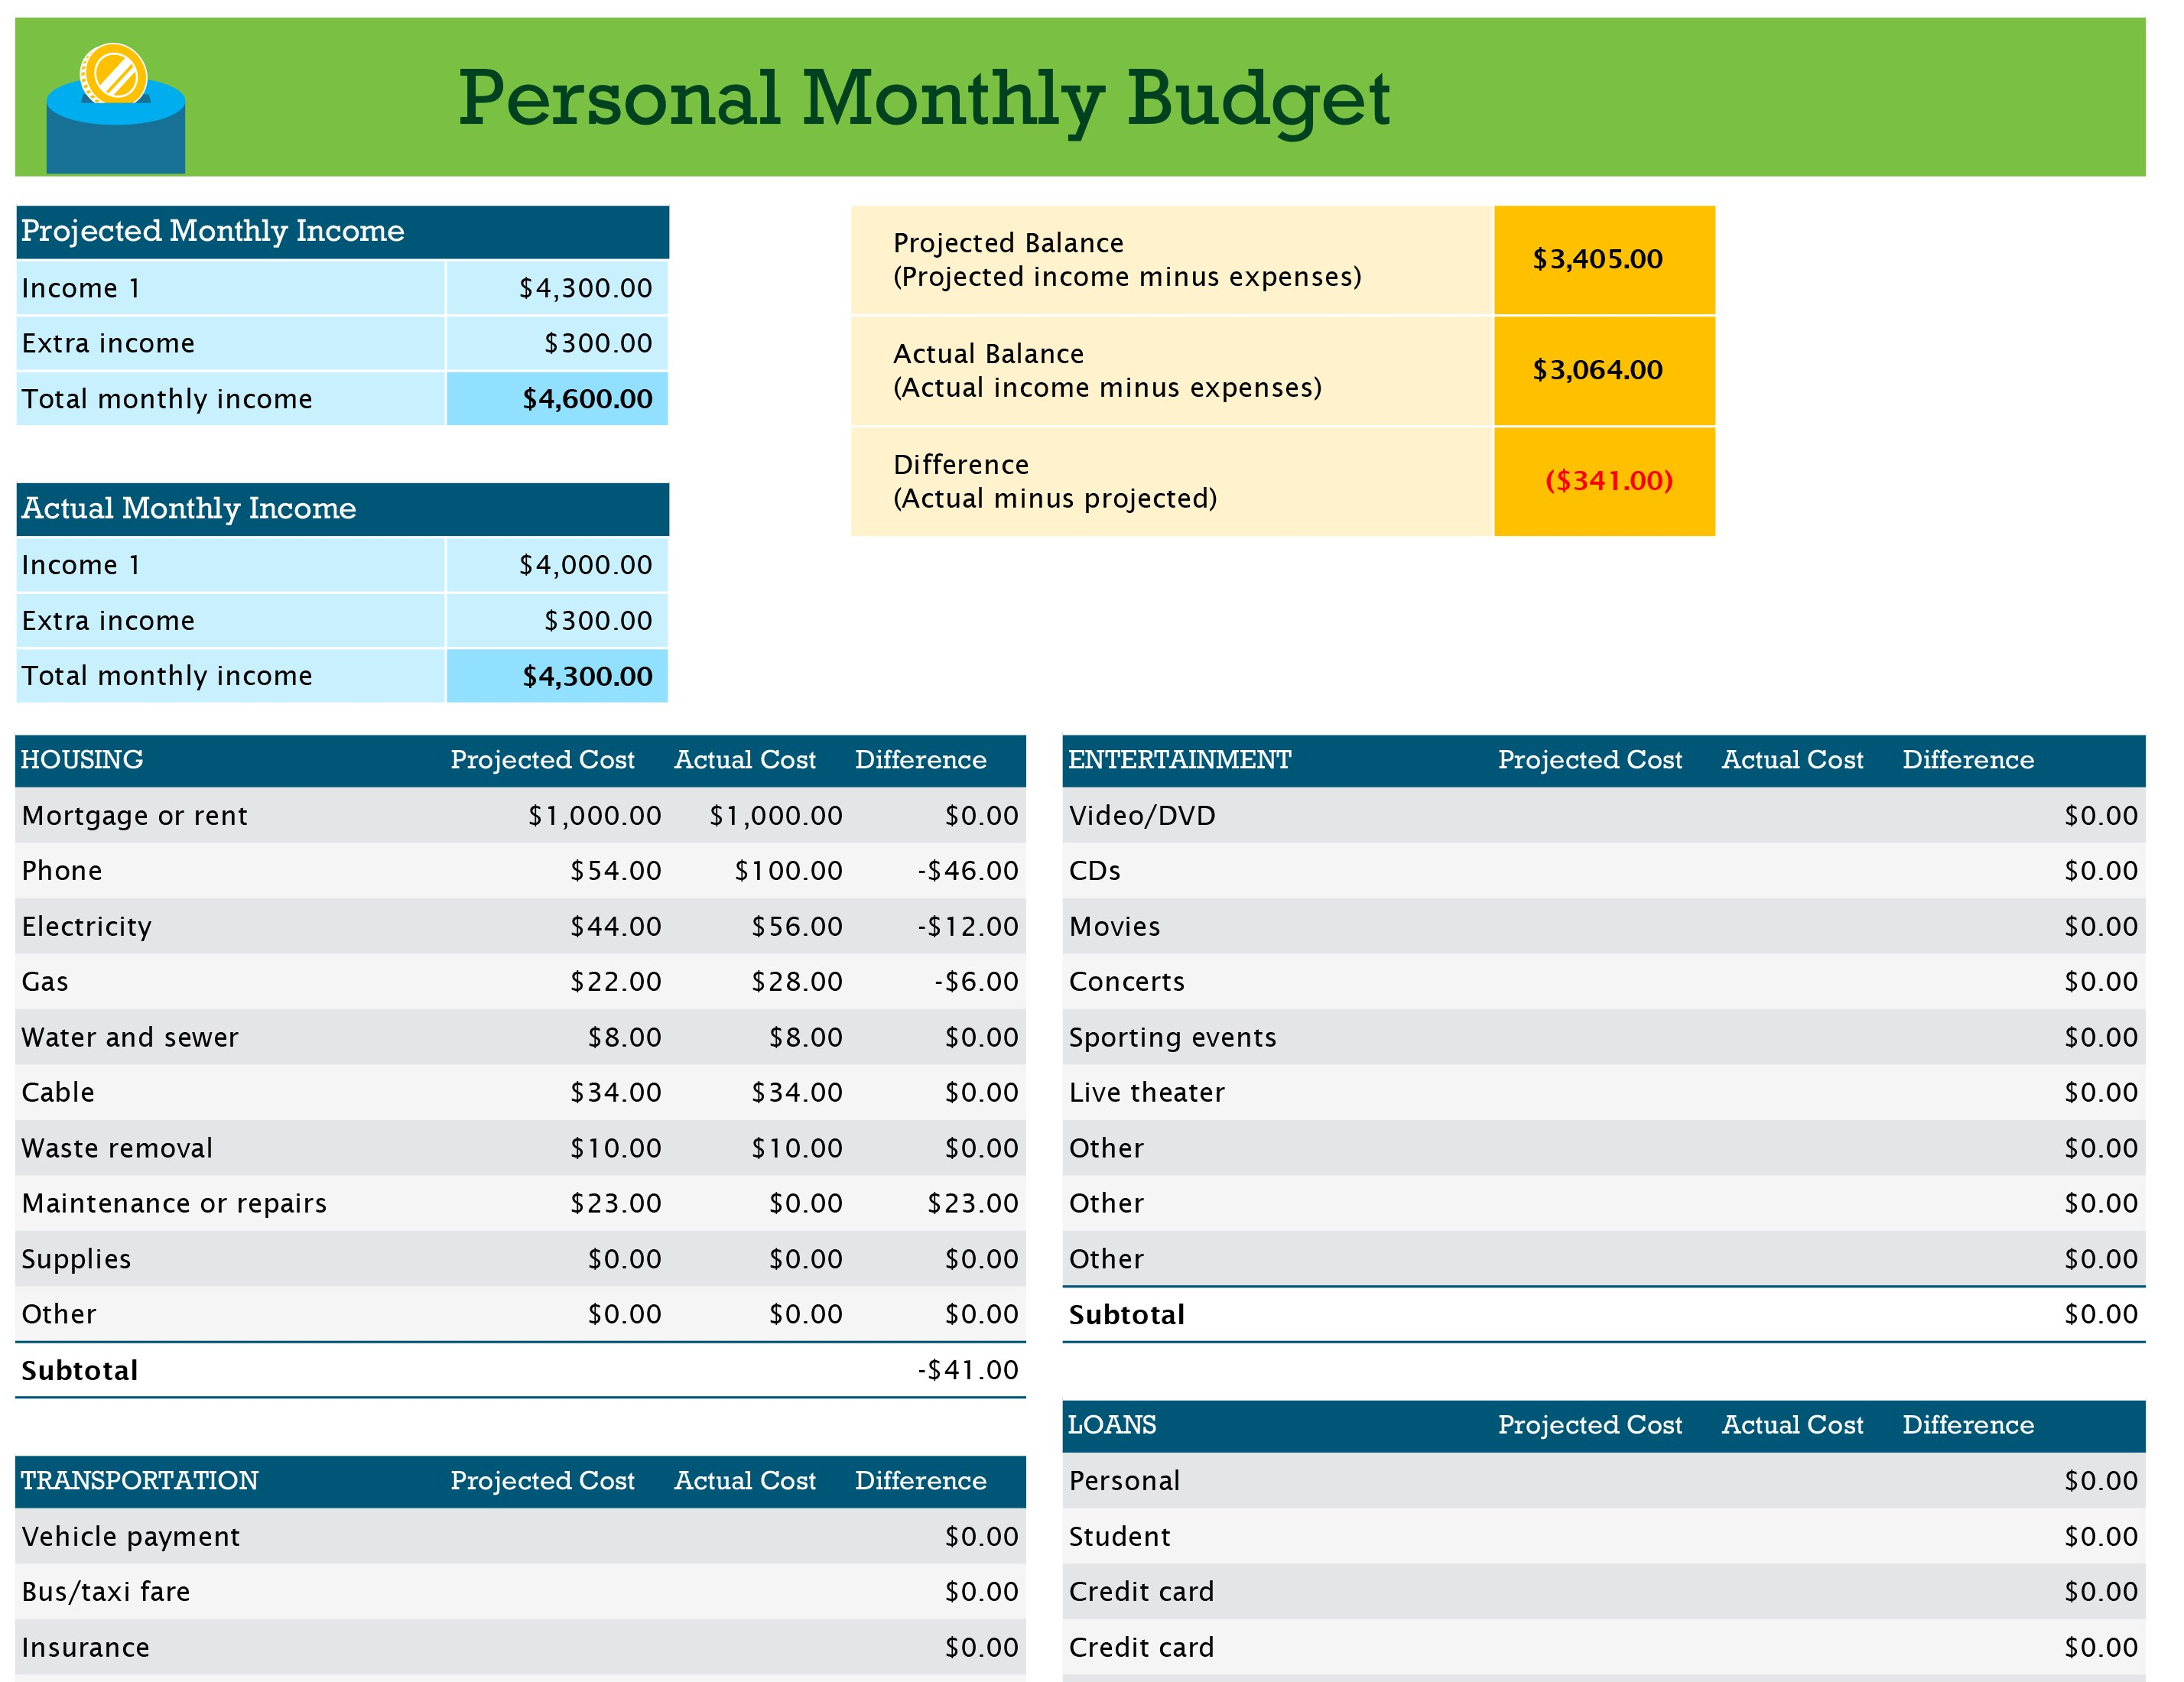 Life Budget Spreadsheet For Personal Monthly Budget